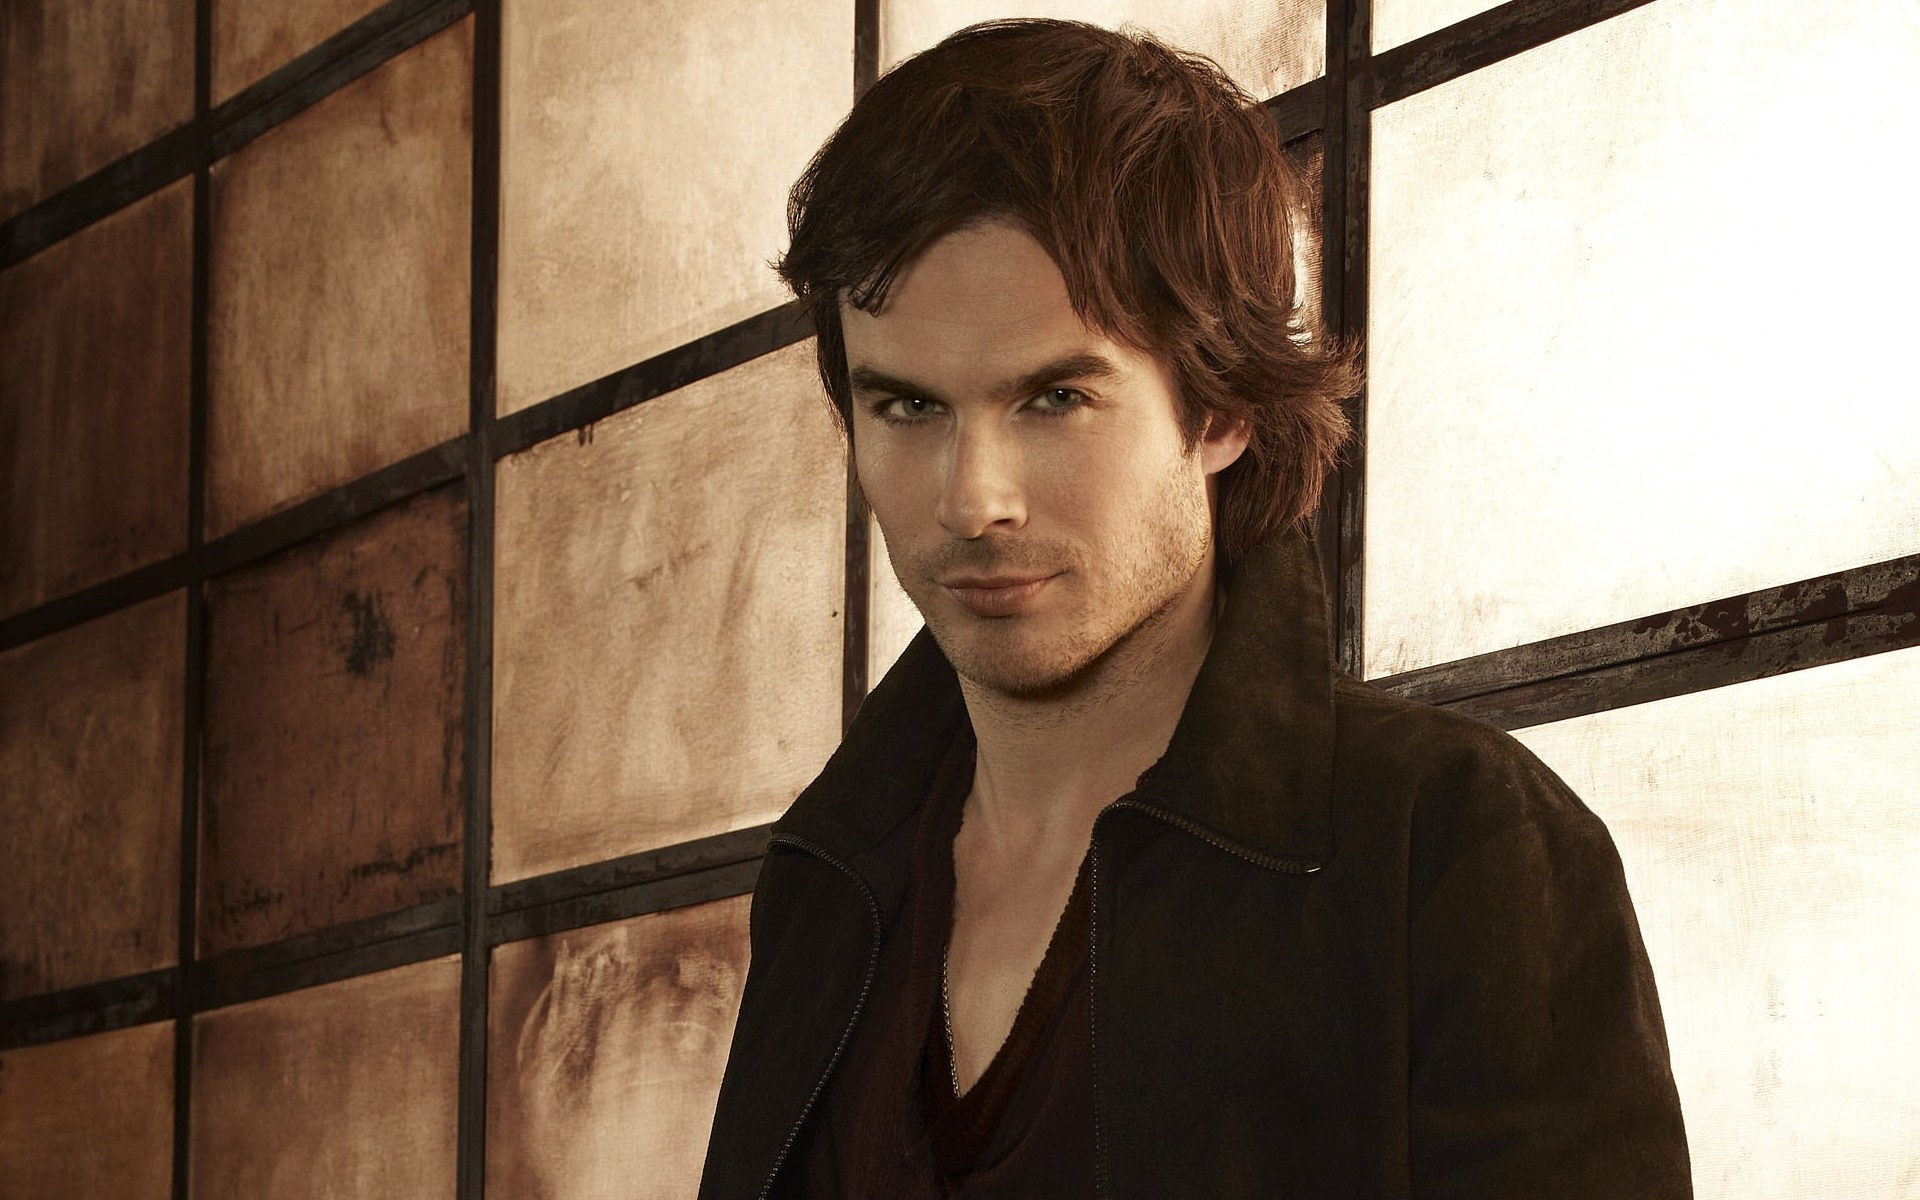 ian somerhalder, the vampire diaries, 3-й сезон, иен сомерхолдер